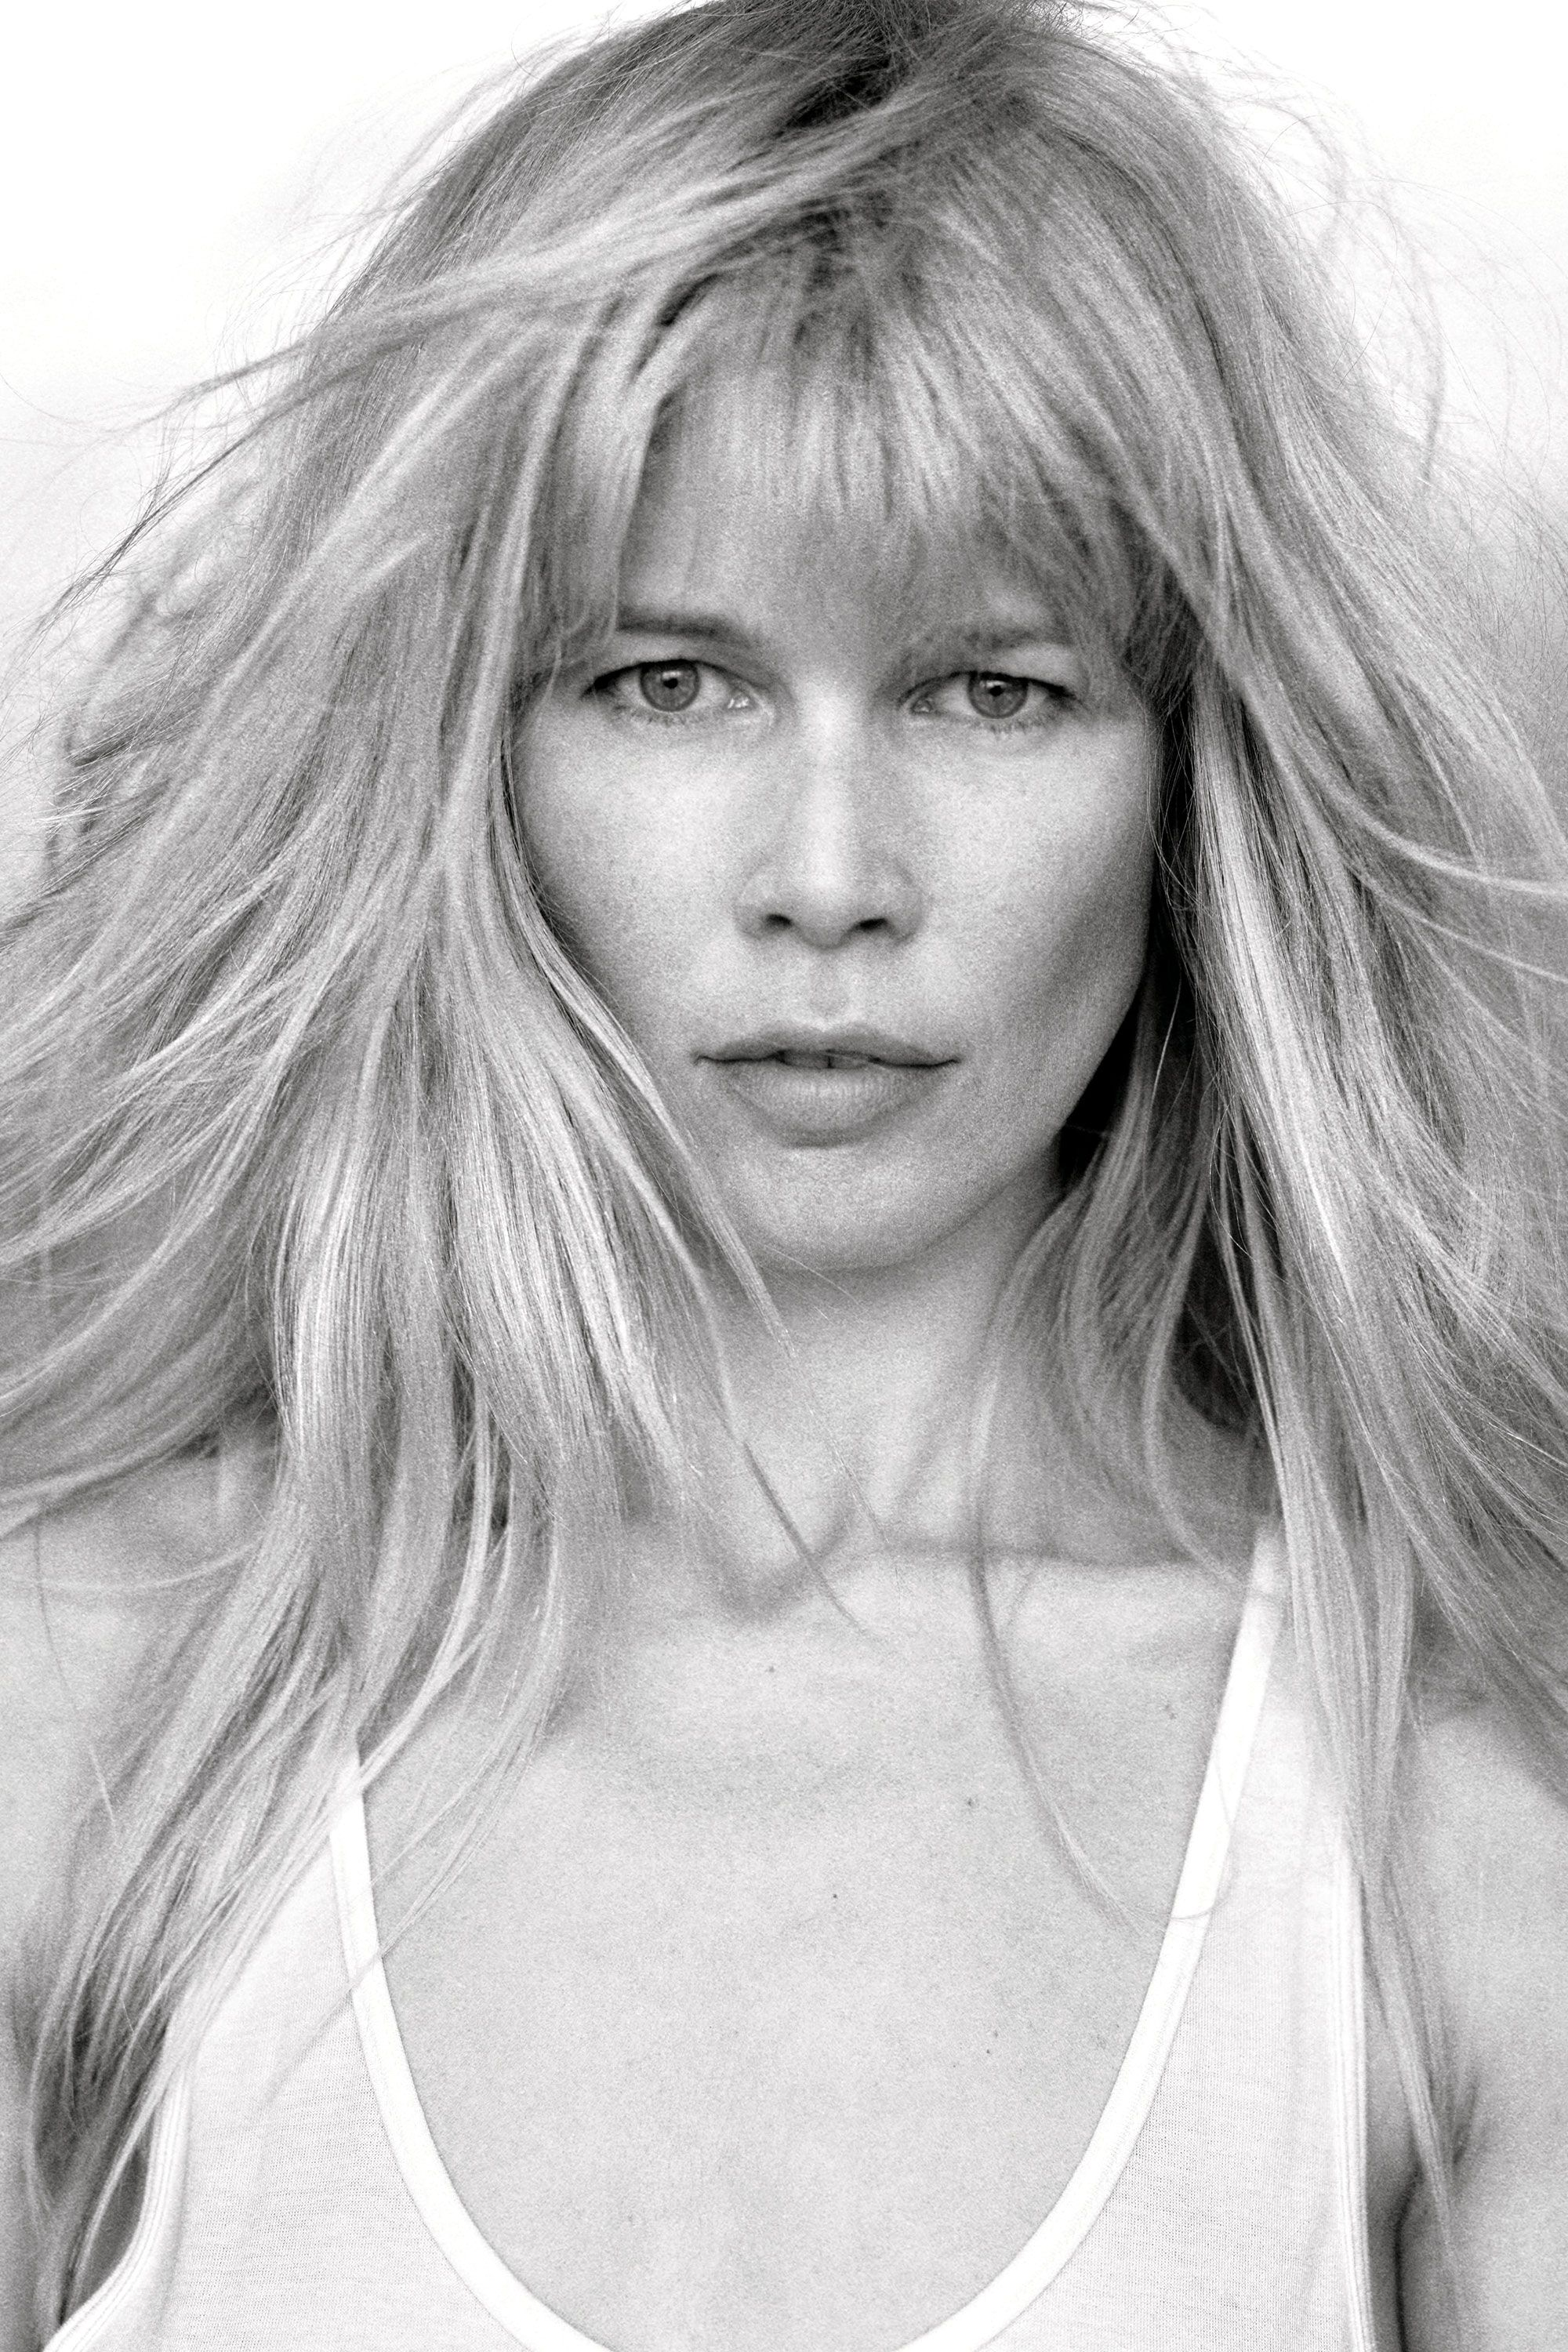 Supernatural Supermodels Without Makeup Claudia Schiffer Peter Lindbergh Models Without Makeup